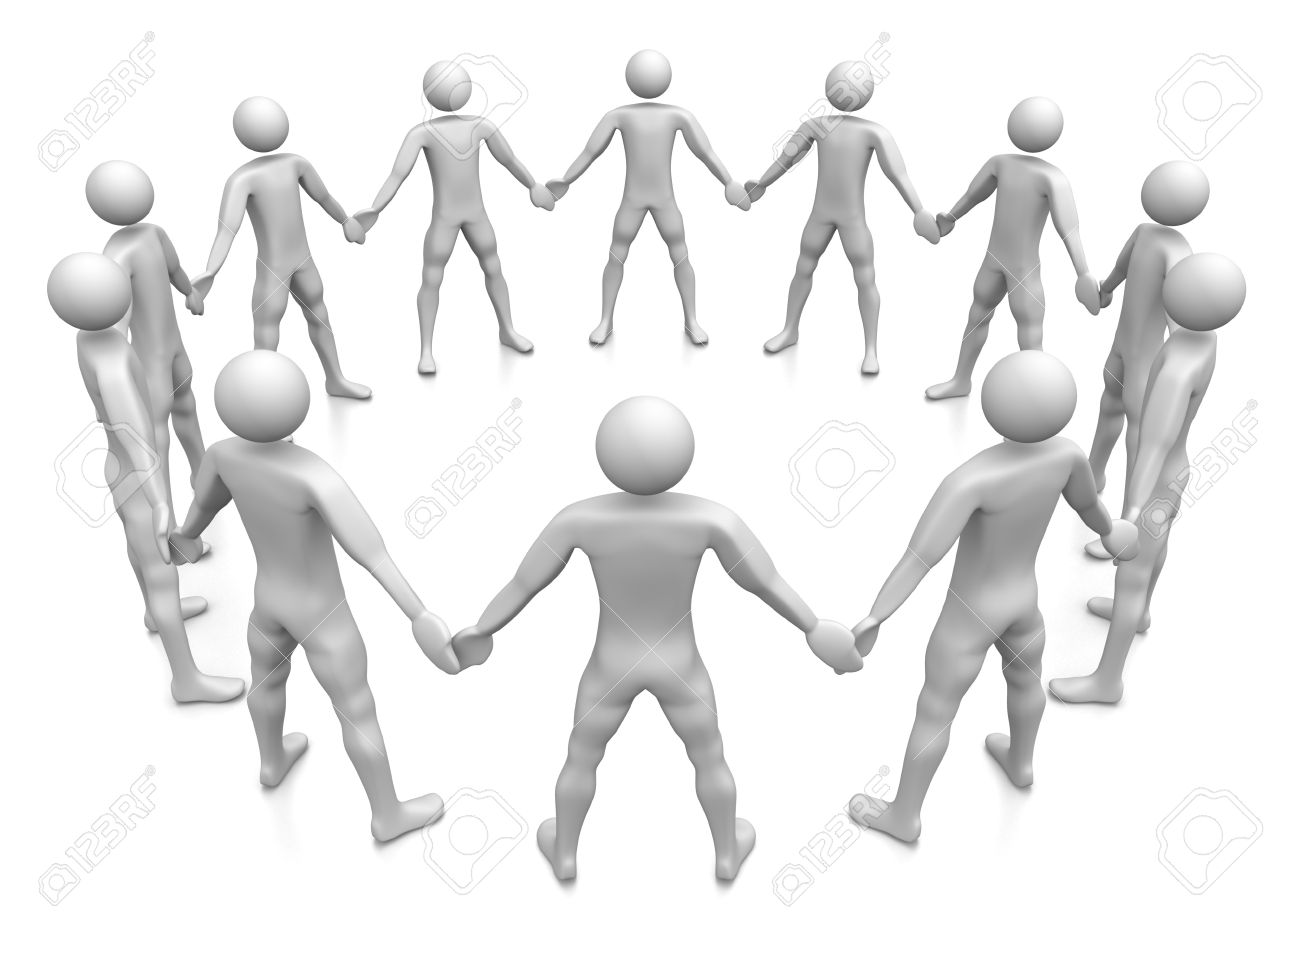 1300x975 Computer Rendered Graphic Of A Team Of People Holding Hands